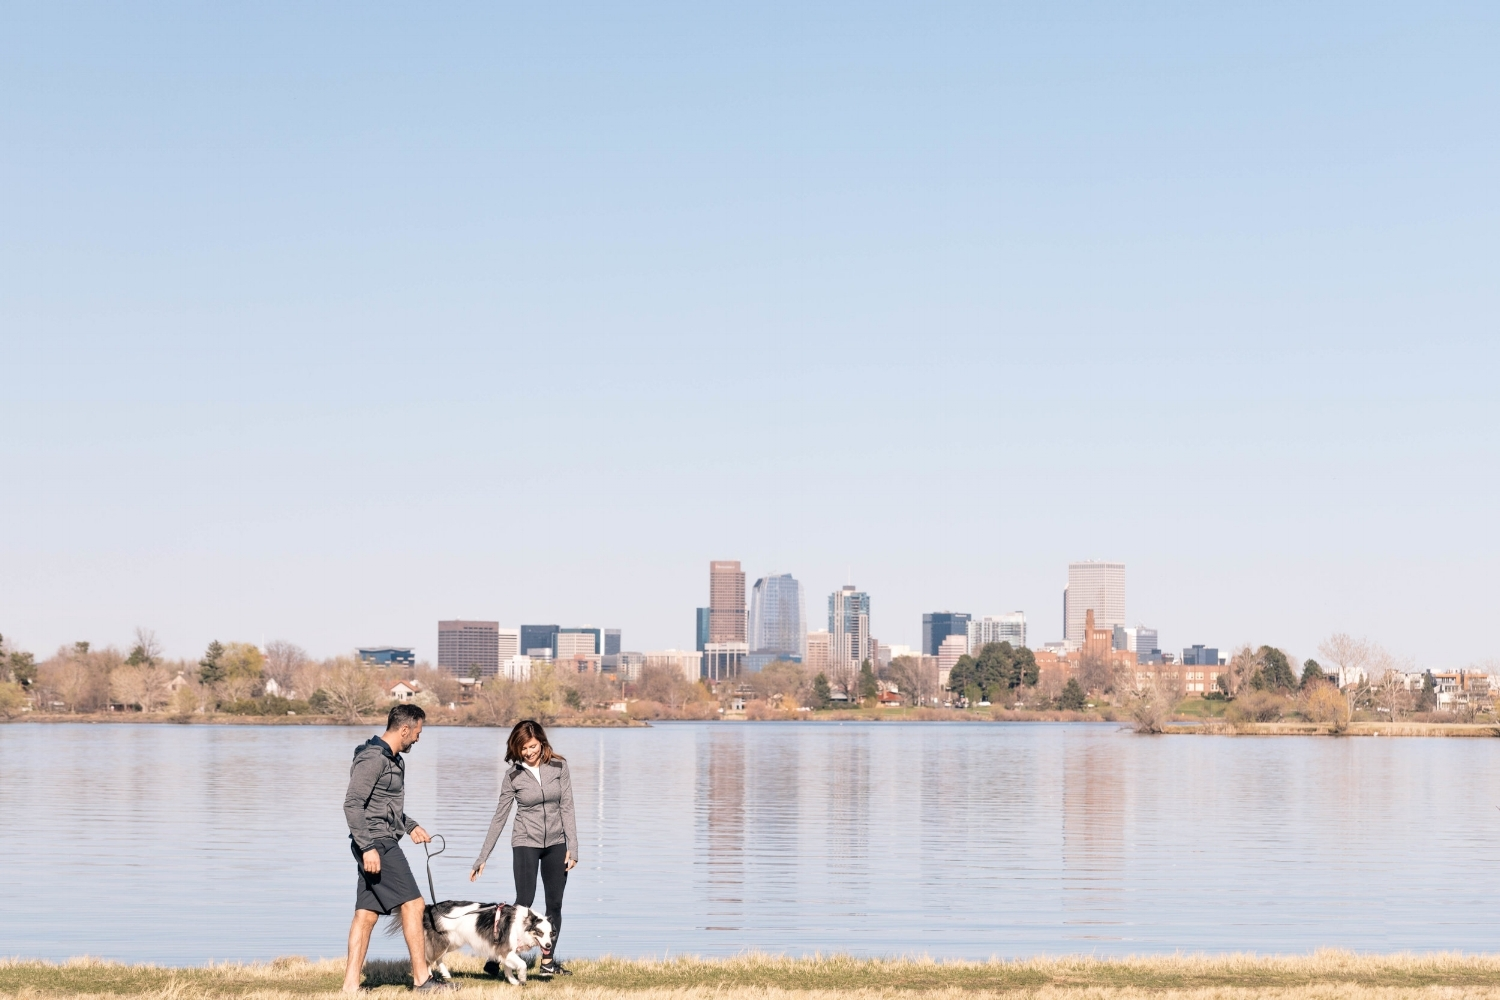 Jimena-Peck-Denver-Lifestyle-Editorial-Photographer-Lakehouse-Denver-Walking-The-Dog